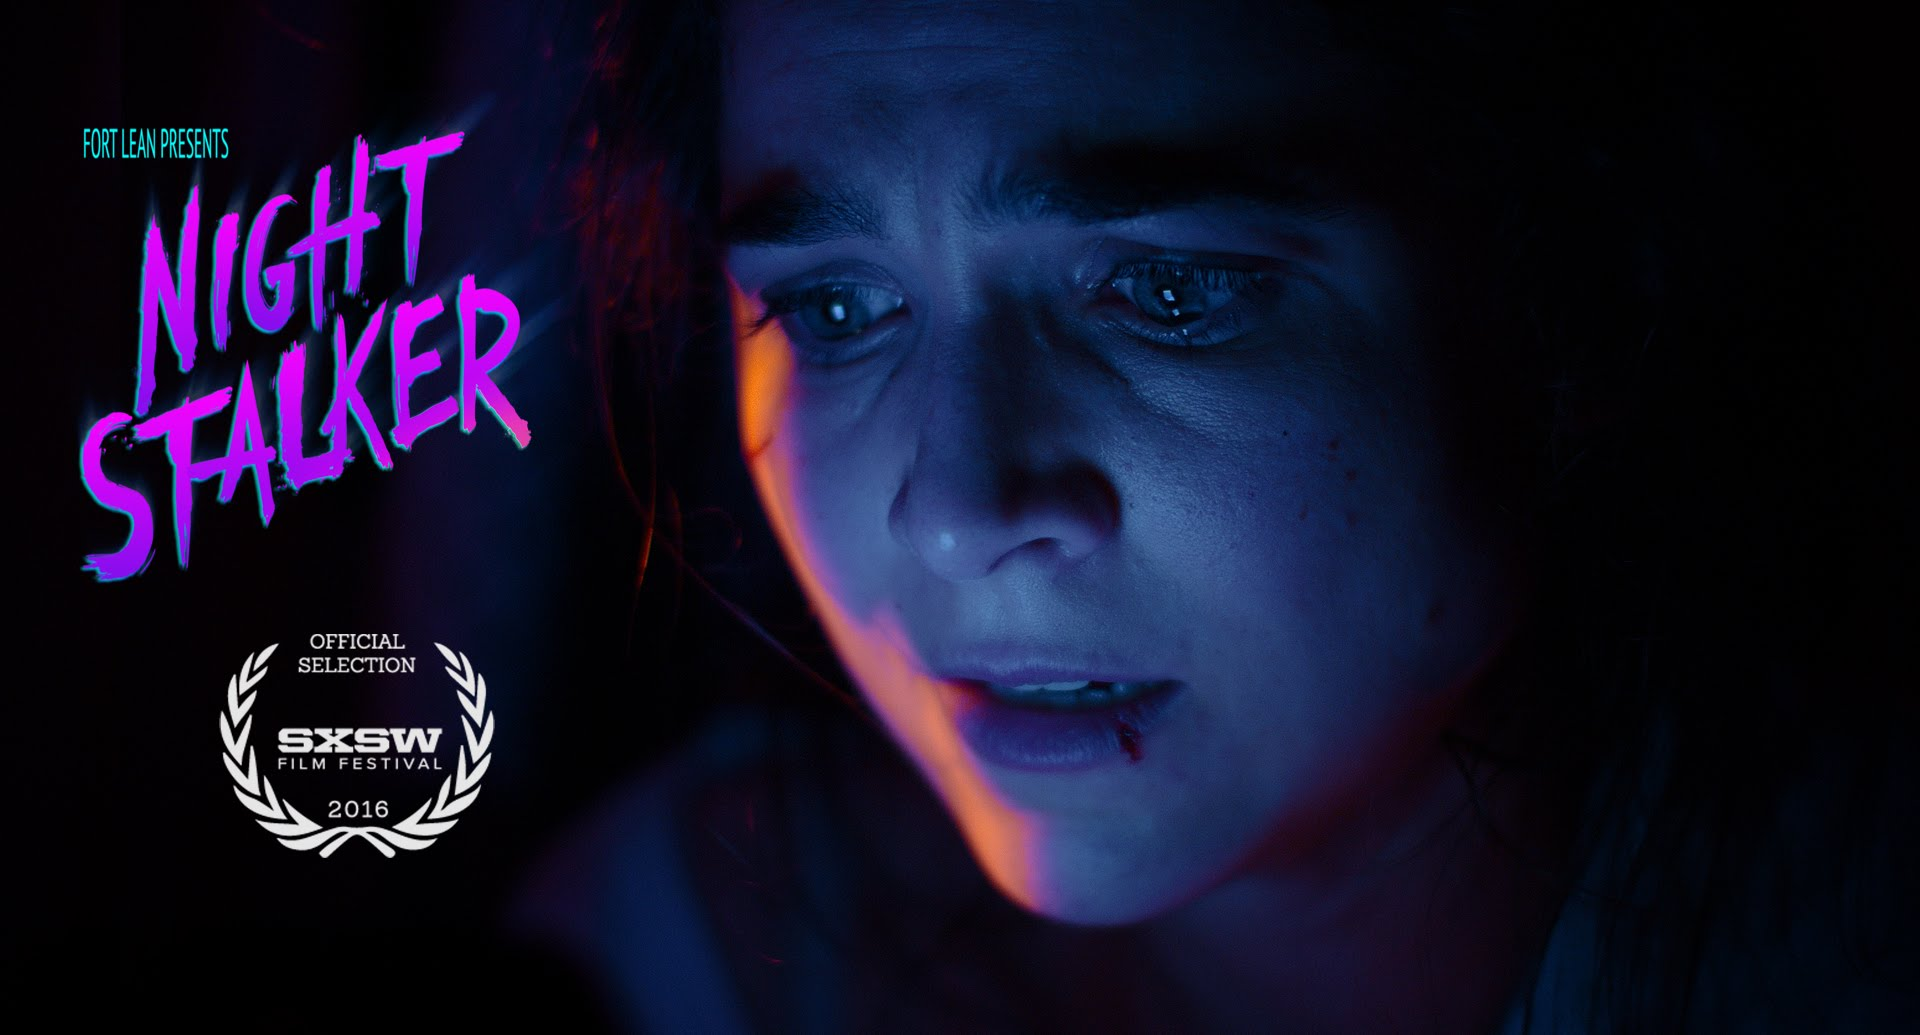 Night Stalker is a Spooky Love Story Featuring Chinese Takeout